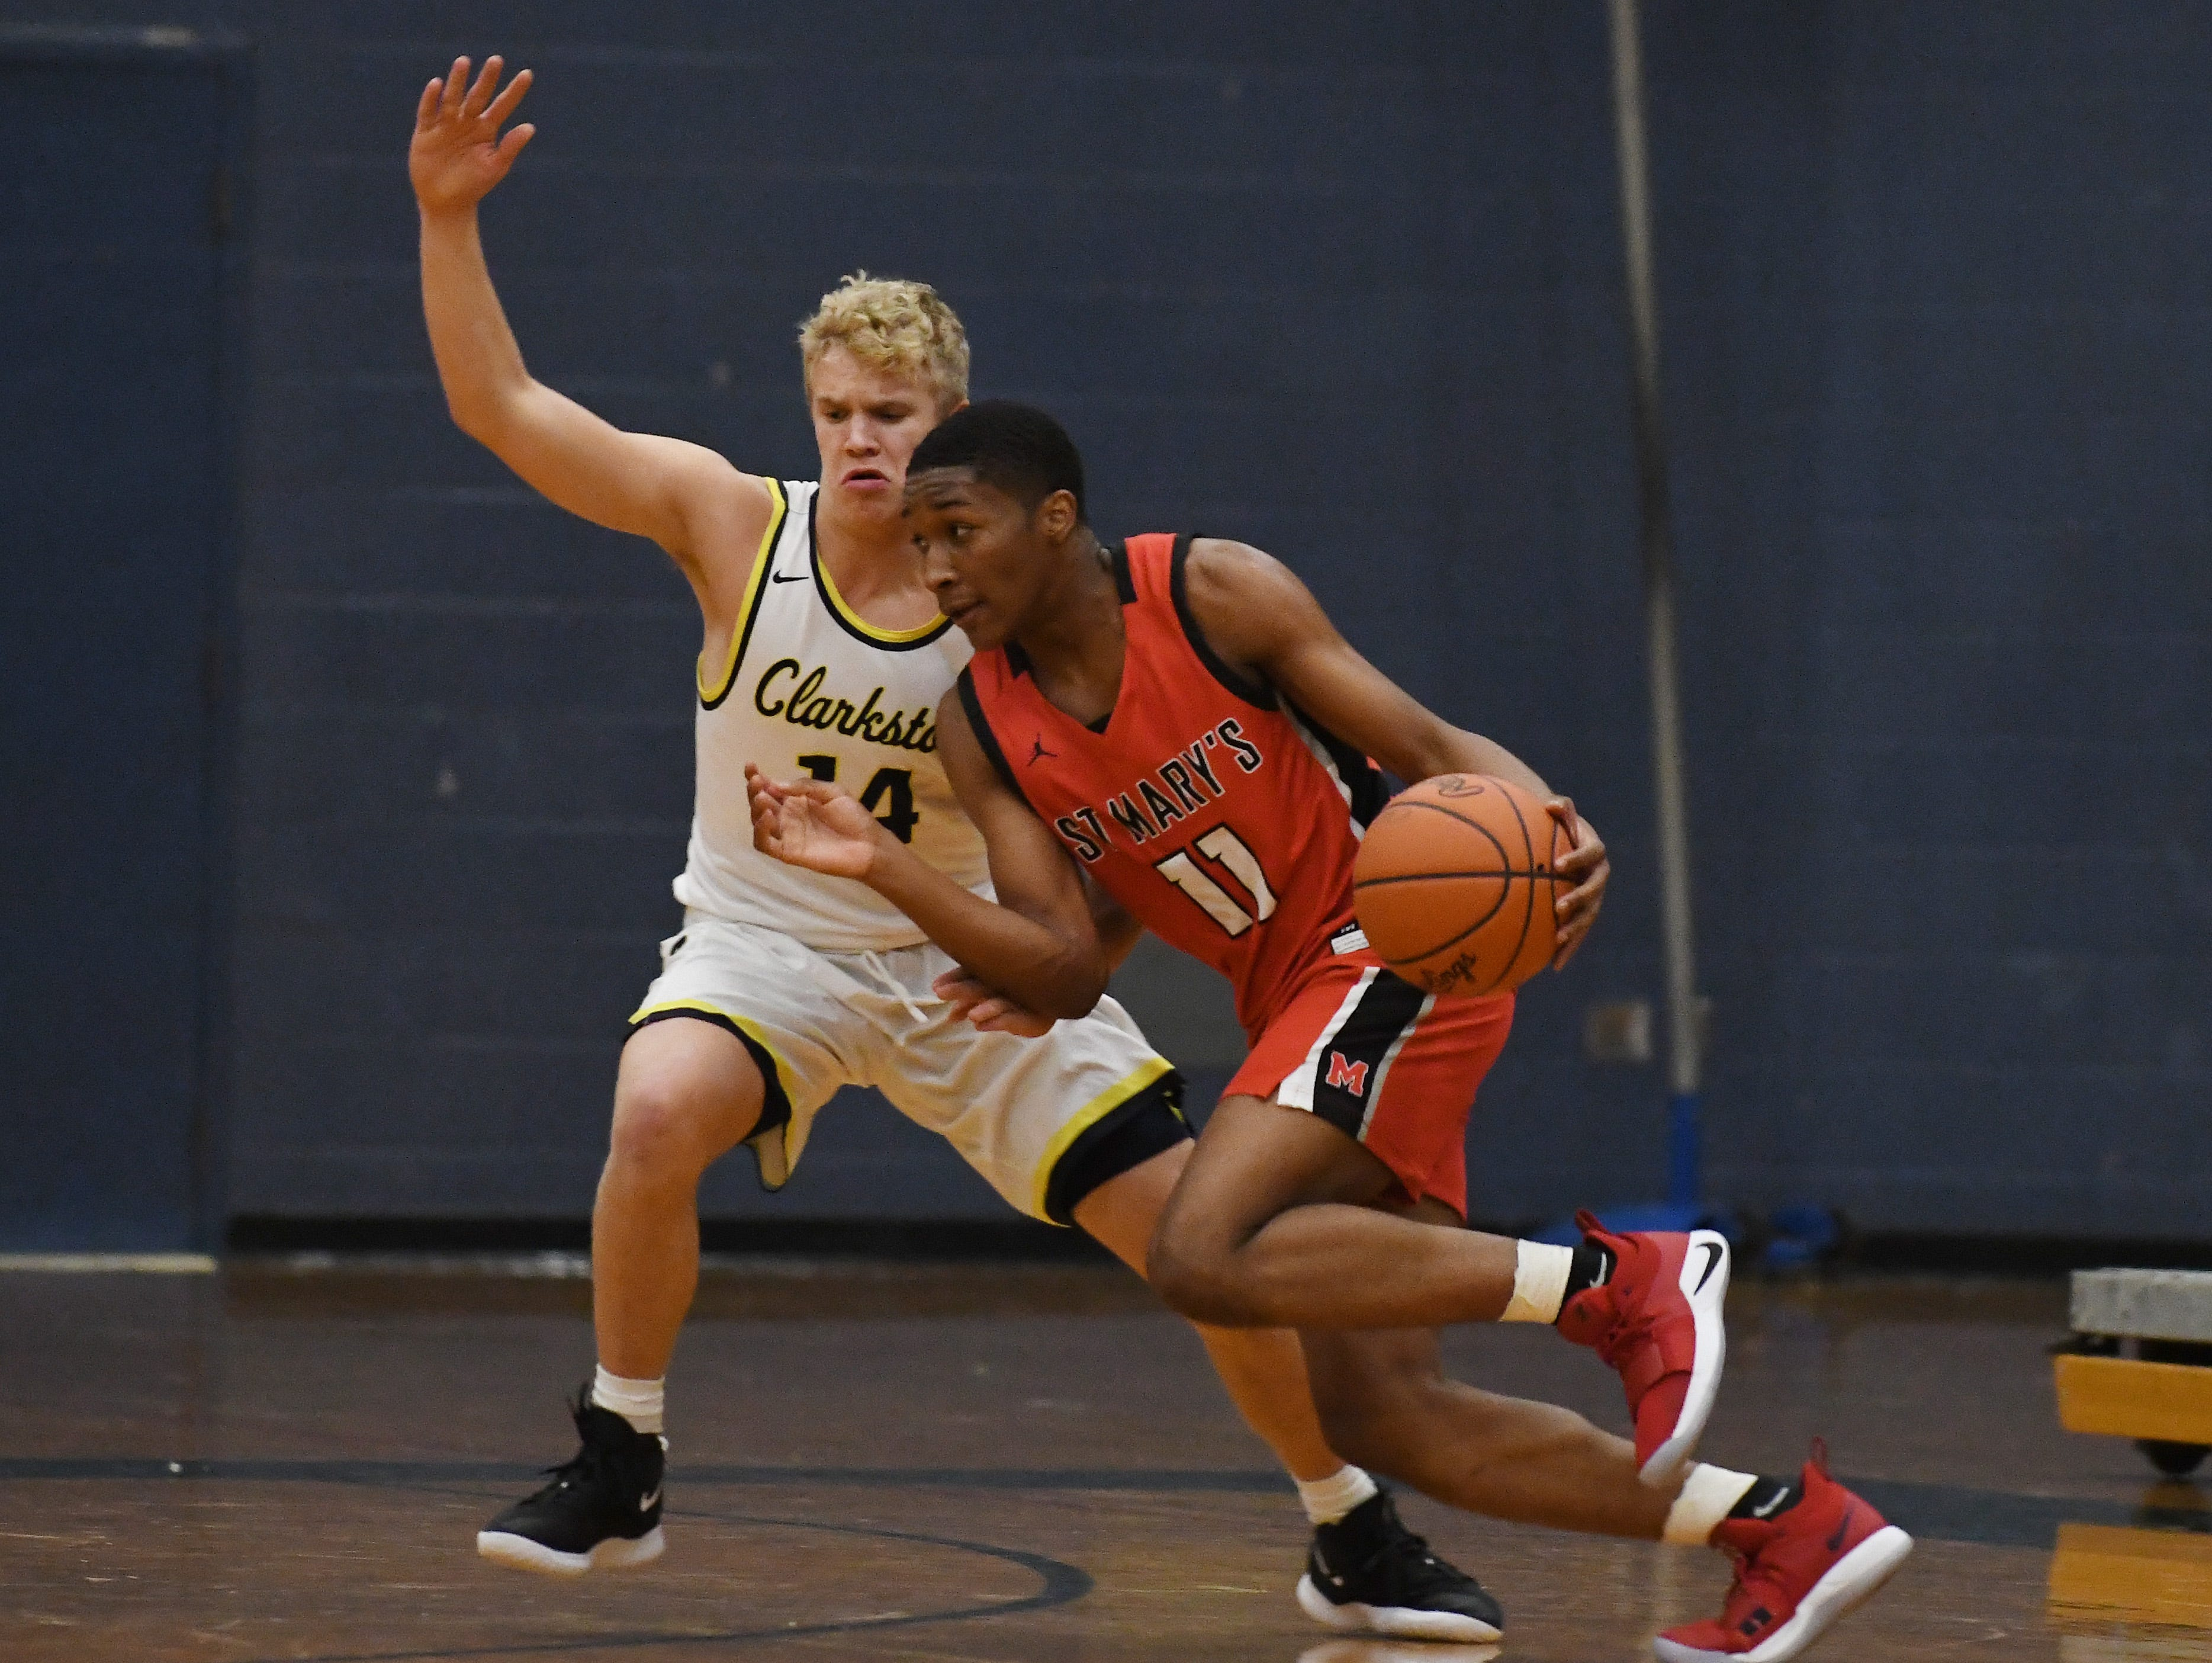 Clarkston's Jake Jensen defends against a driving St. Mary's Lorne Bowman II in the third quarter.